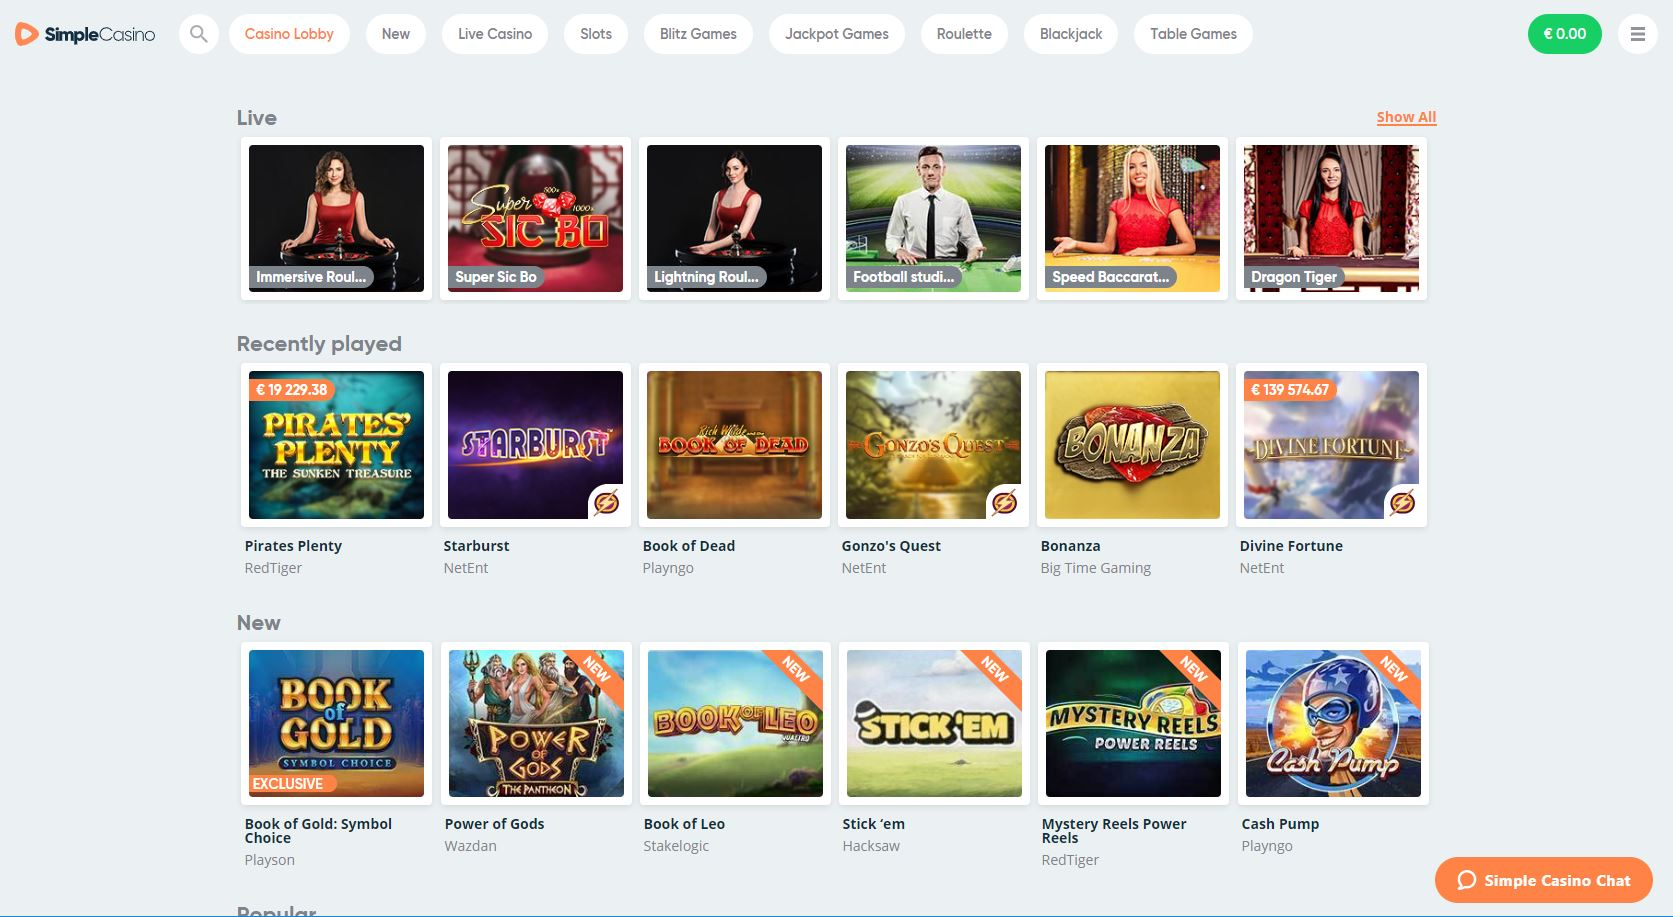 Picture of Simple casinos slot games page